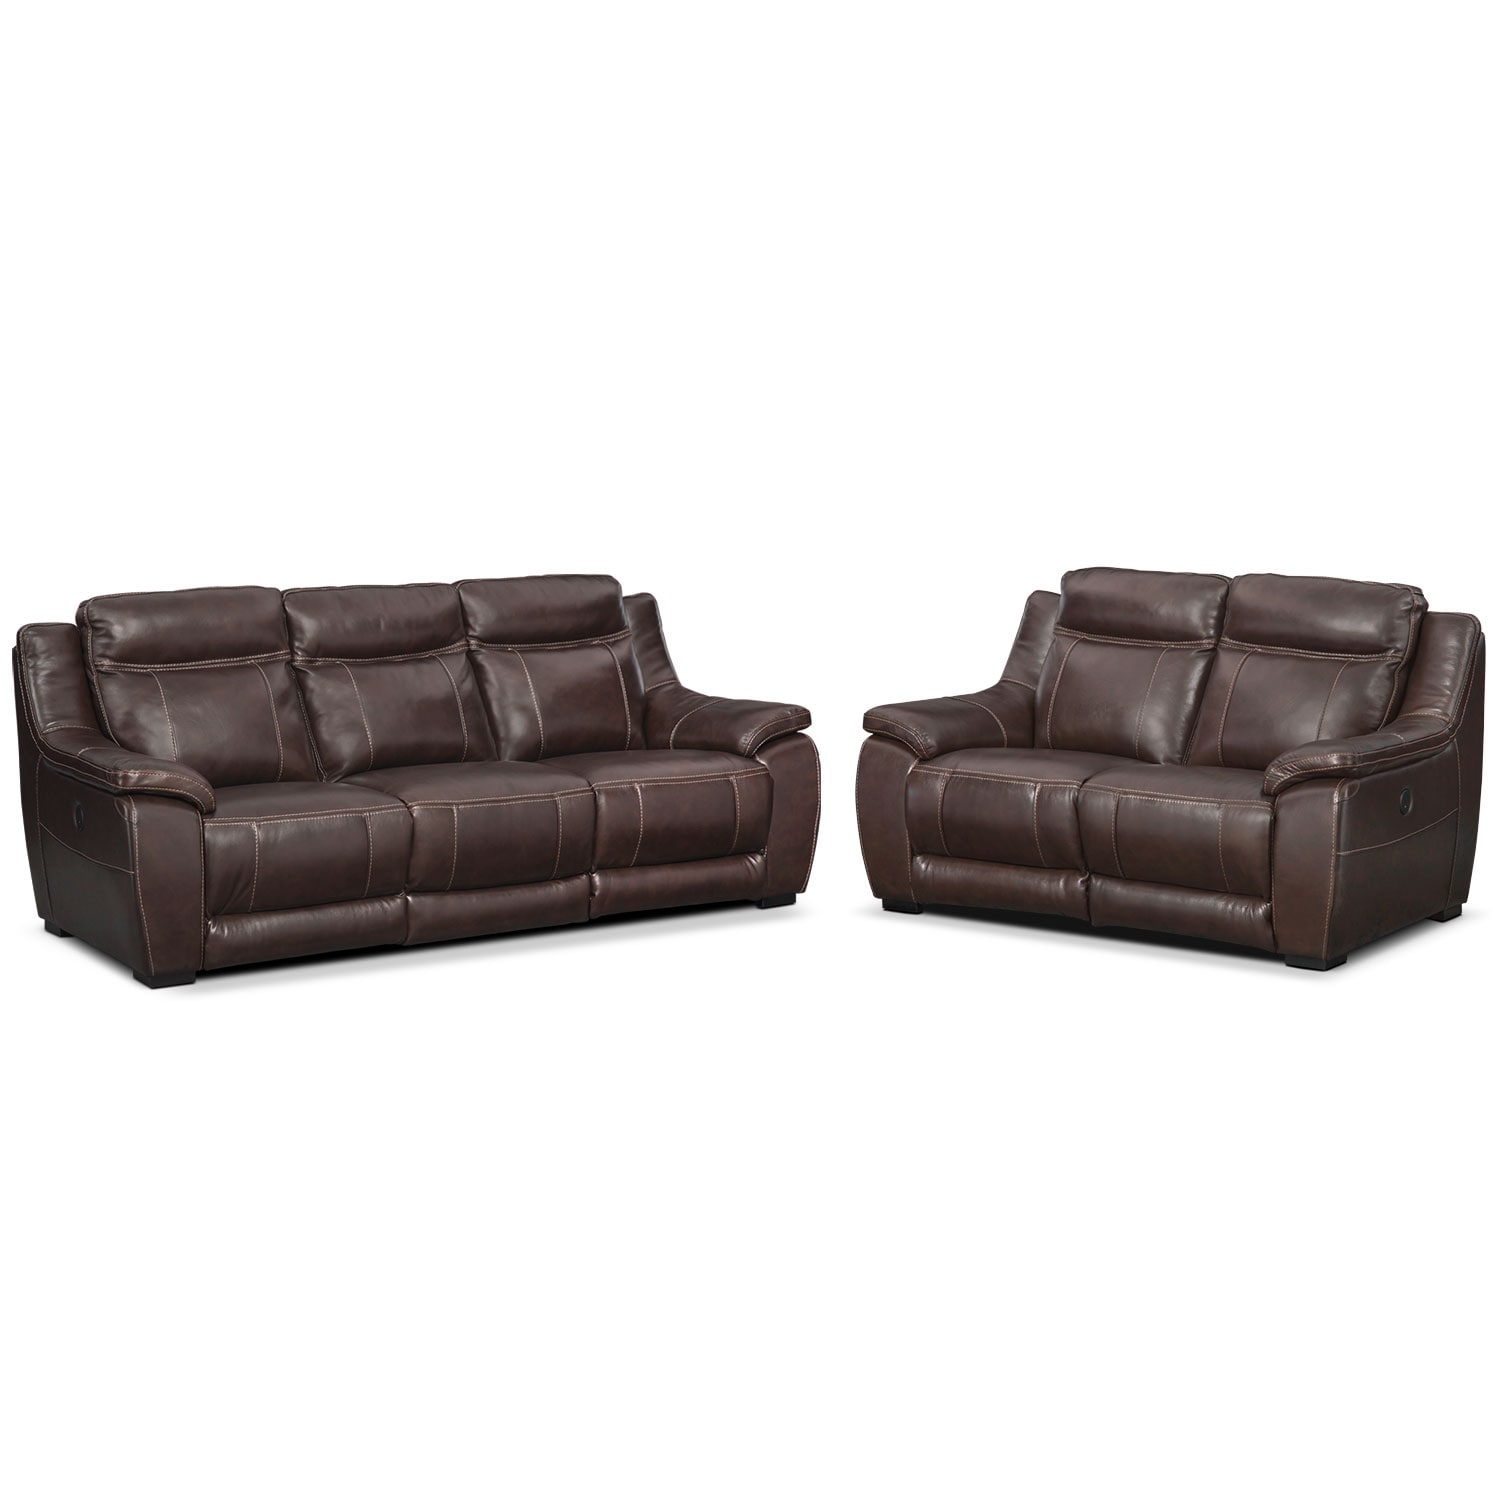 Lido Power Reclining Sofa And Reclining Loveseat Set Brown Value City Furniture